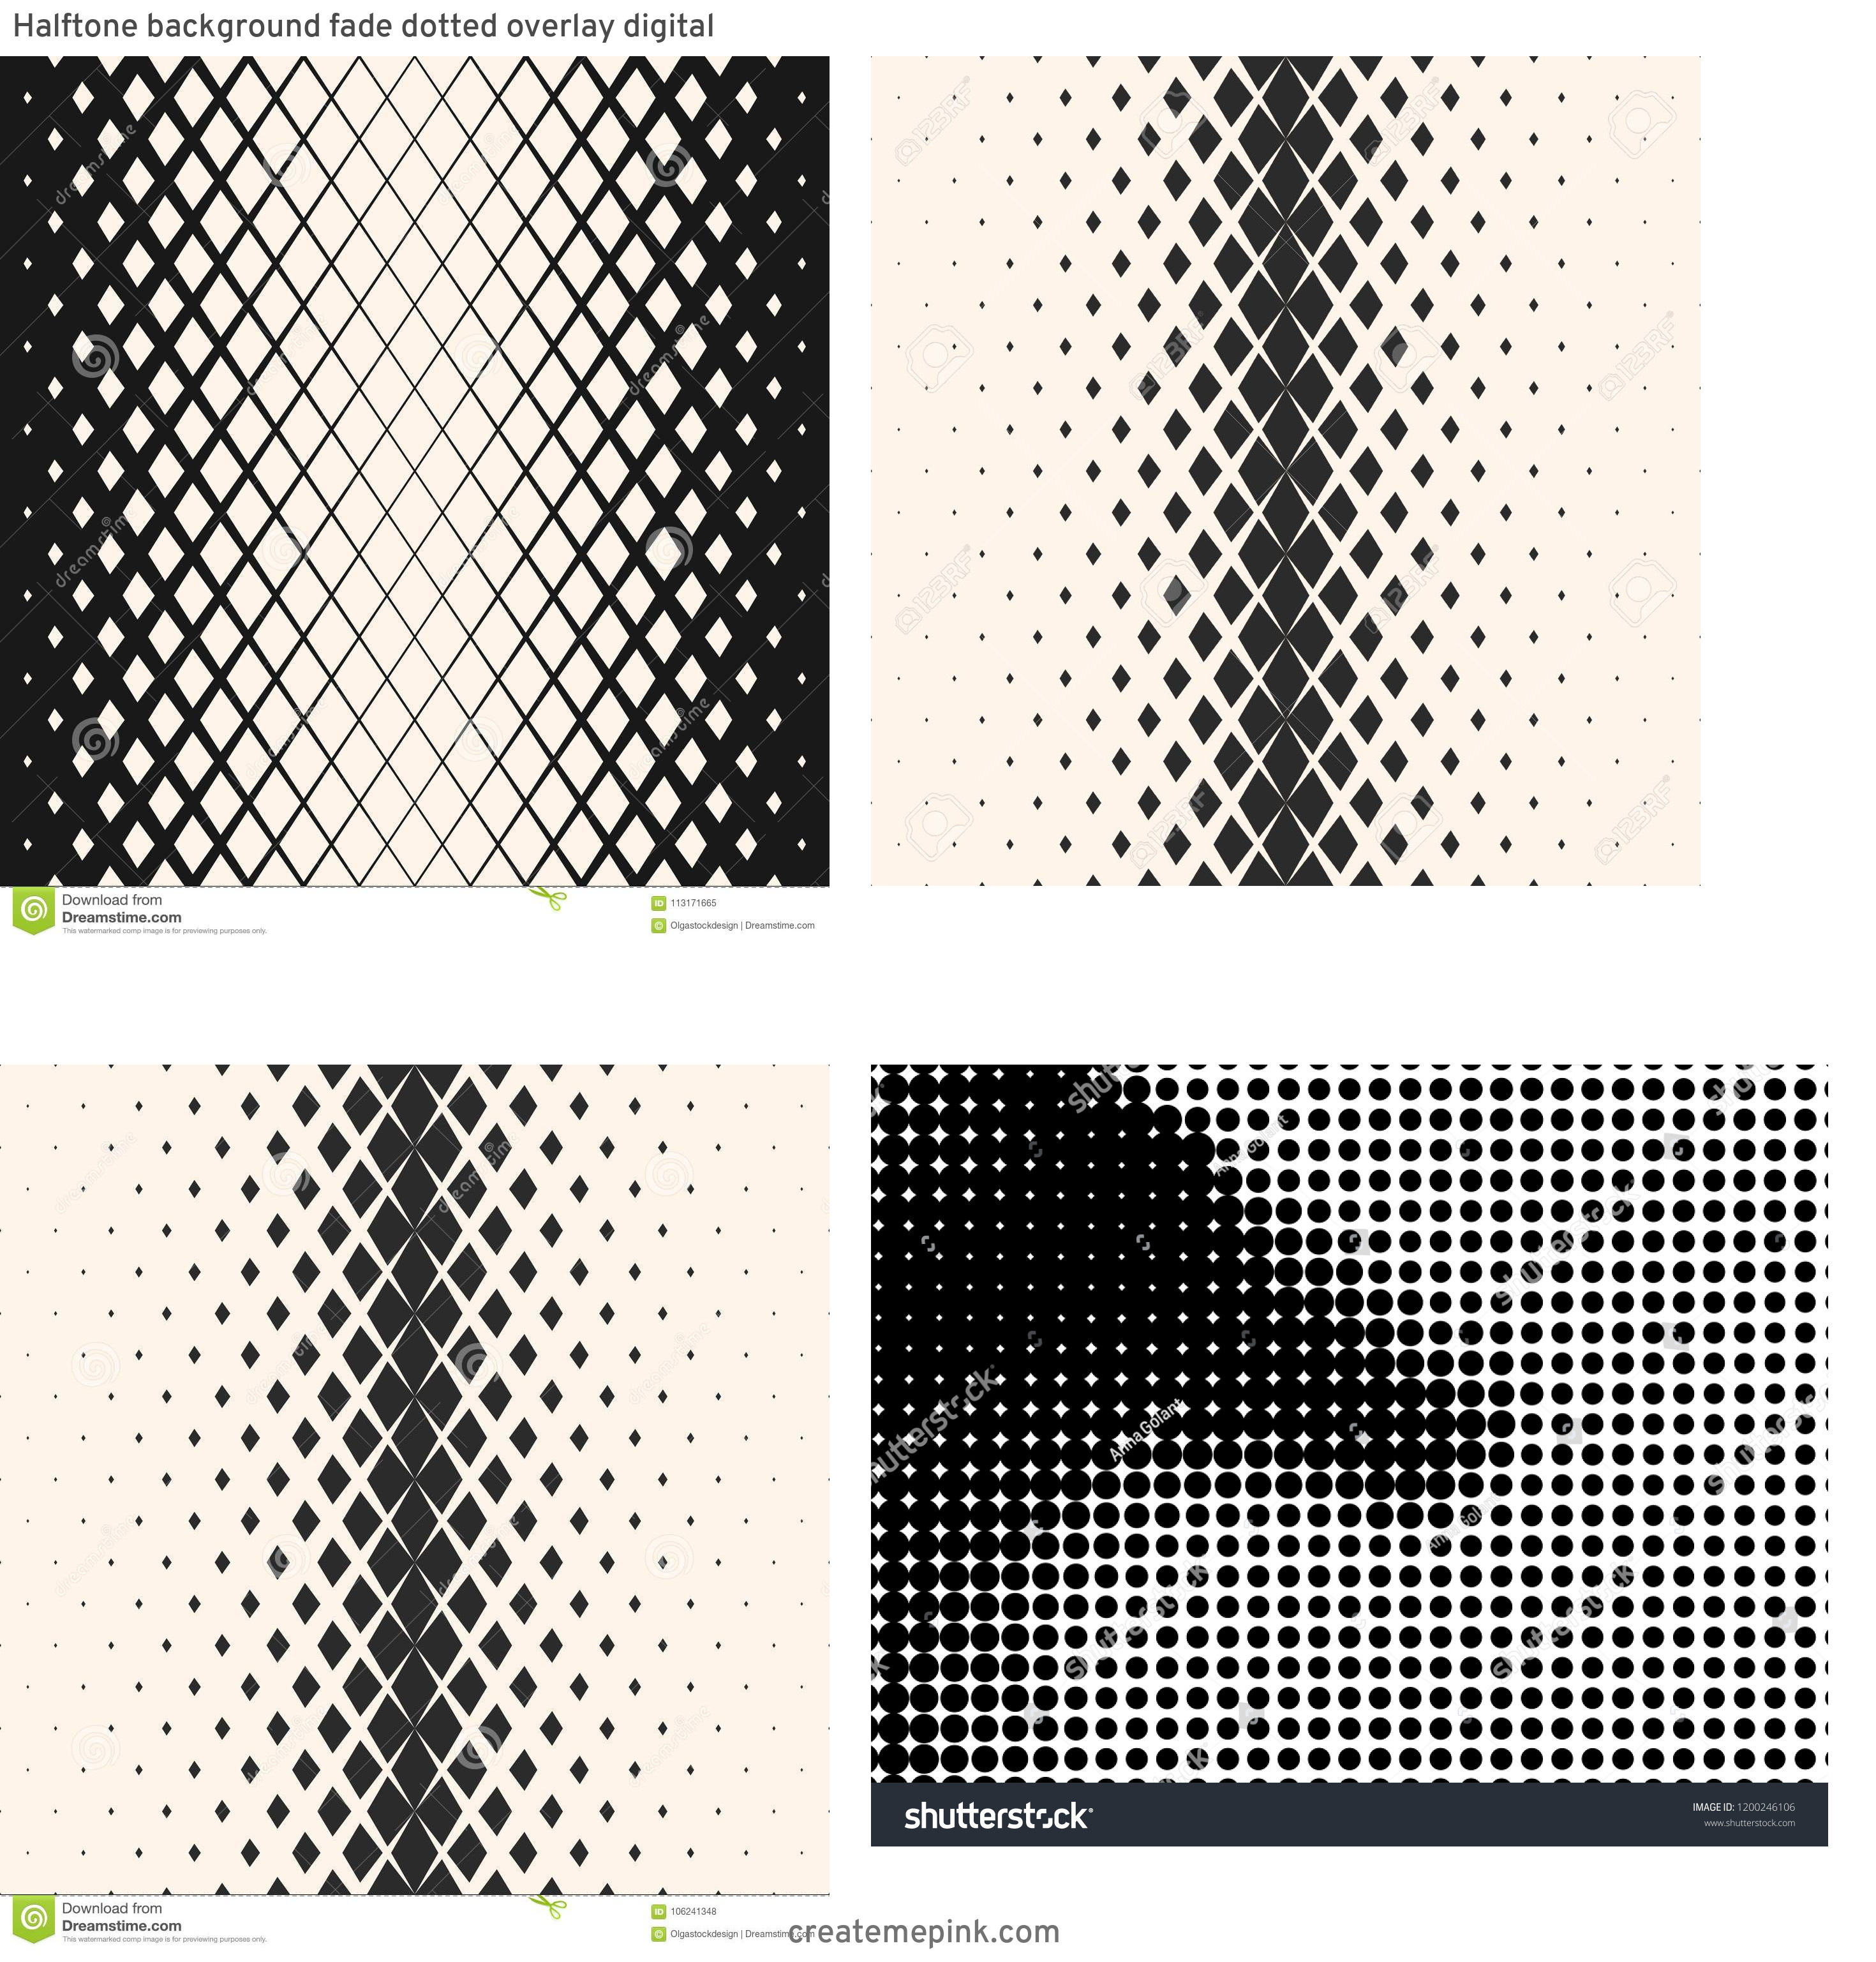 Modern Fading Vector Pattern: Halftone Background Fade Dotted Overlay Digital